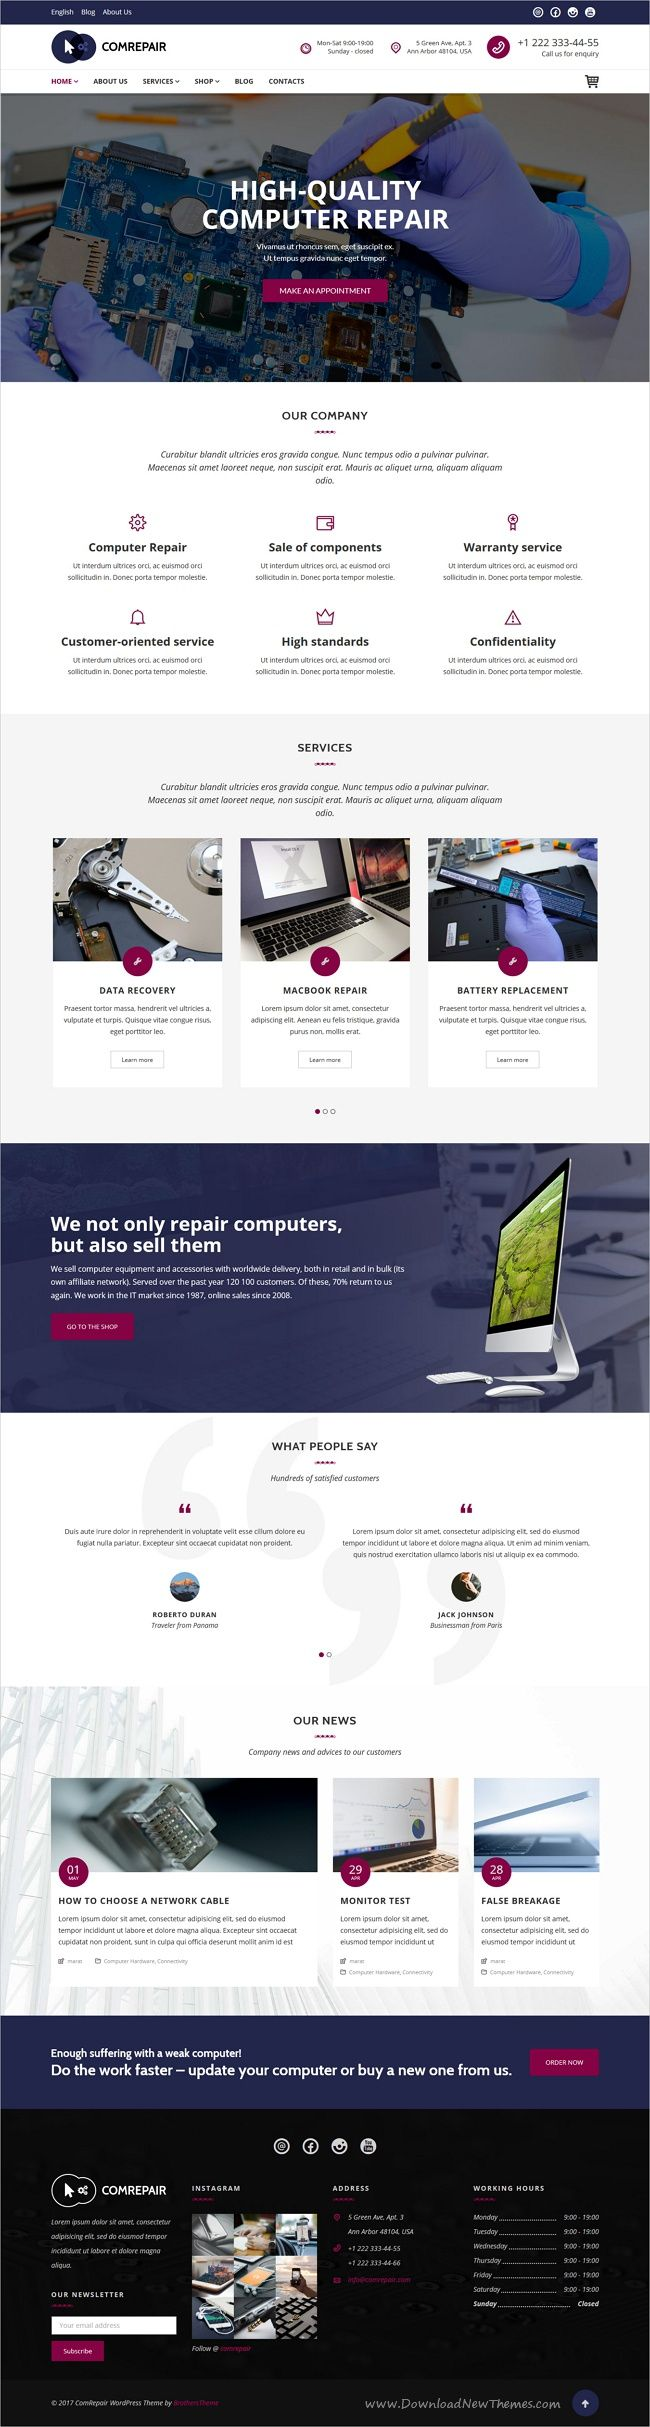 ComRepair is clean and modern design 4in1 responsive #WordPress theme for electronics and #mobile #repair services website download now > https://themeforest.net/item/comrepair-computer-repair-services-wordpress-theme/19836952?ref=Datasata